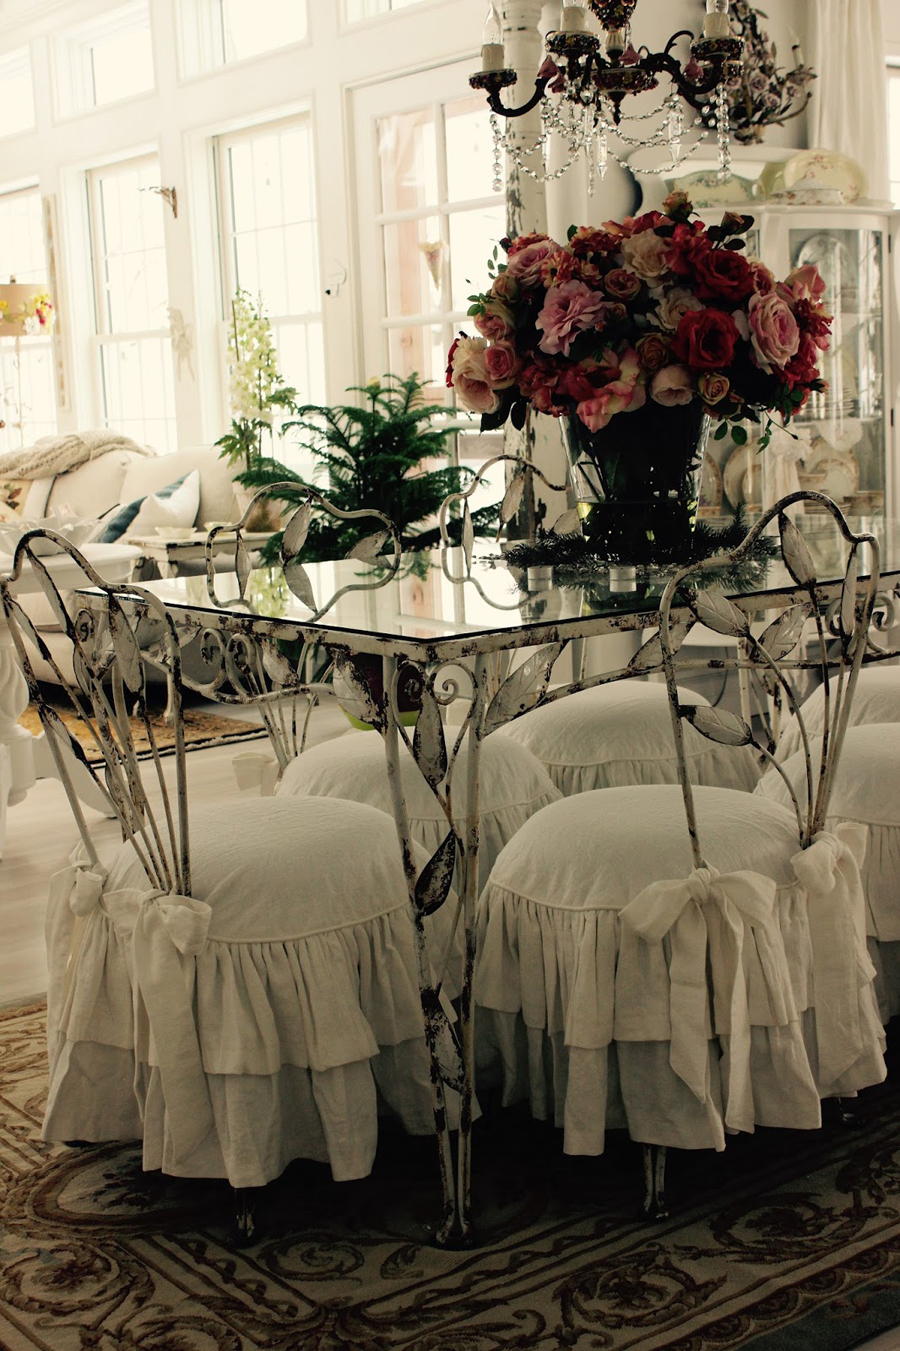 such pretty and romantic slipcovers - 1 of 8 picks for this week's Friday Favorites